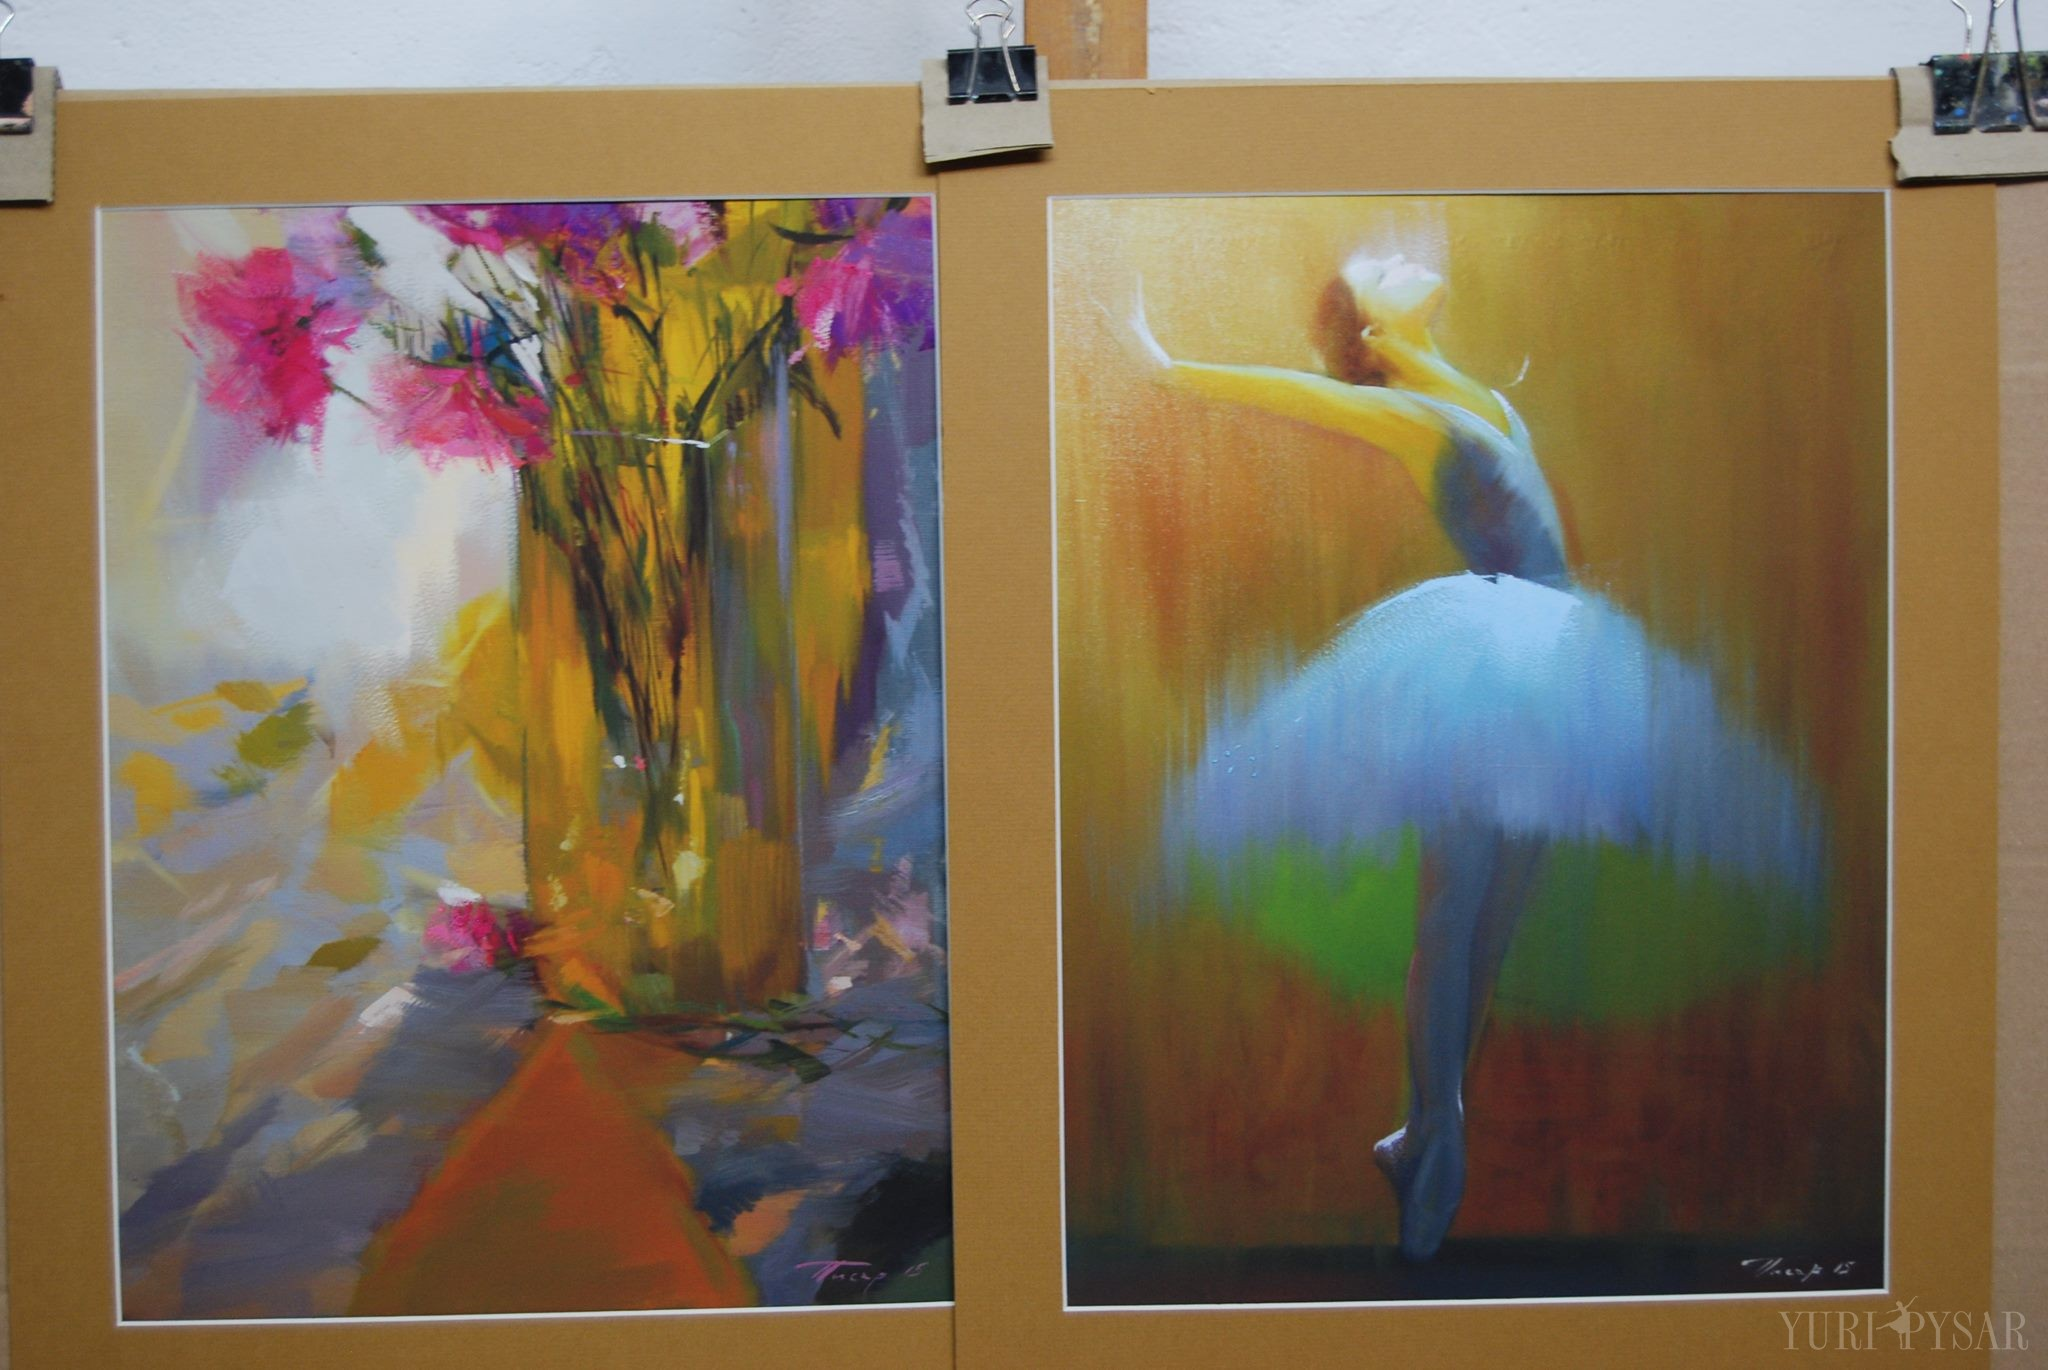 giclee art print of the original paintings on canvas